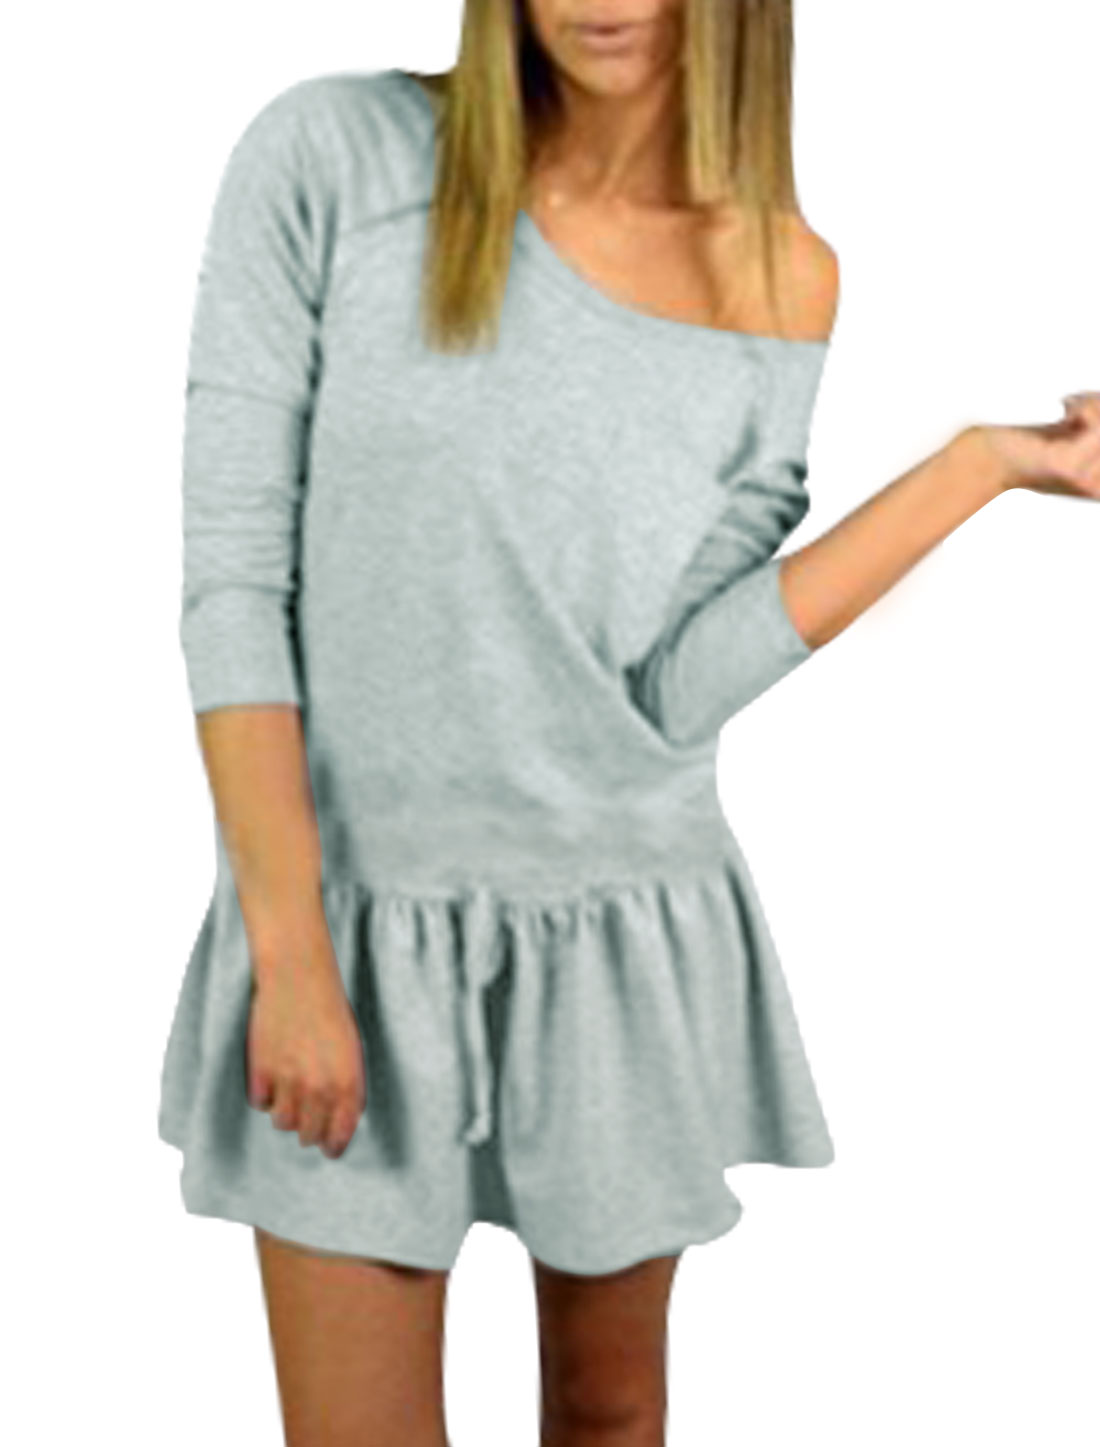 Women Scoop Neck Raglan Sleeves Drawstring Waist Mini Dress Gray XS